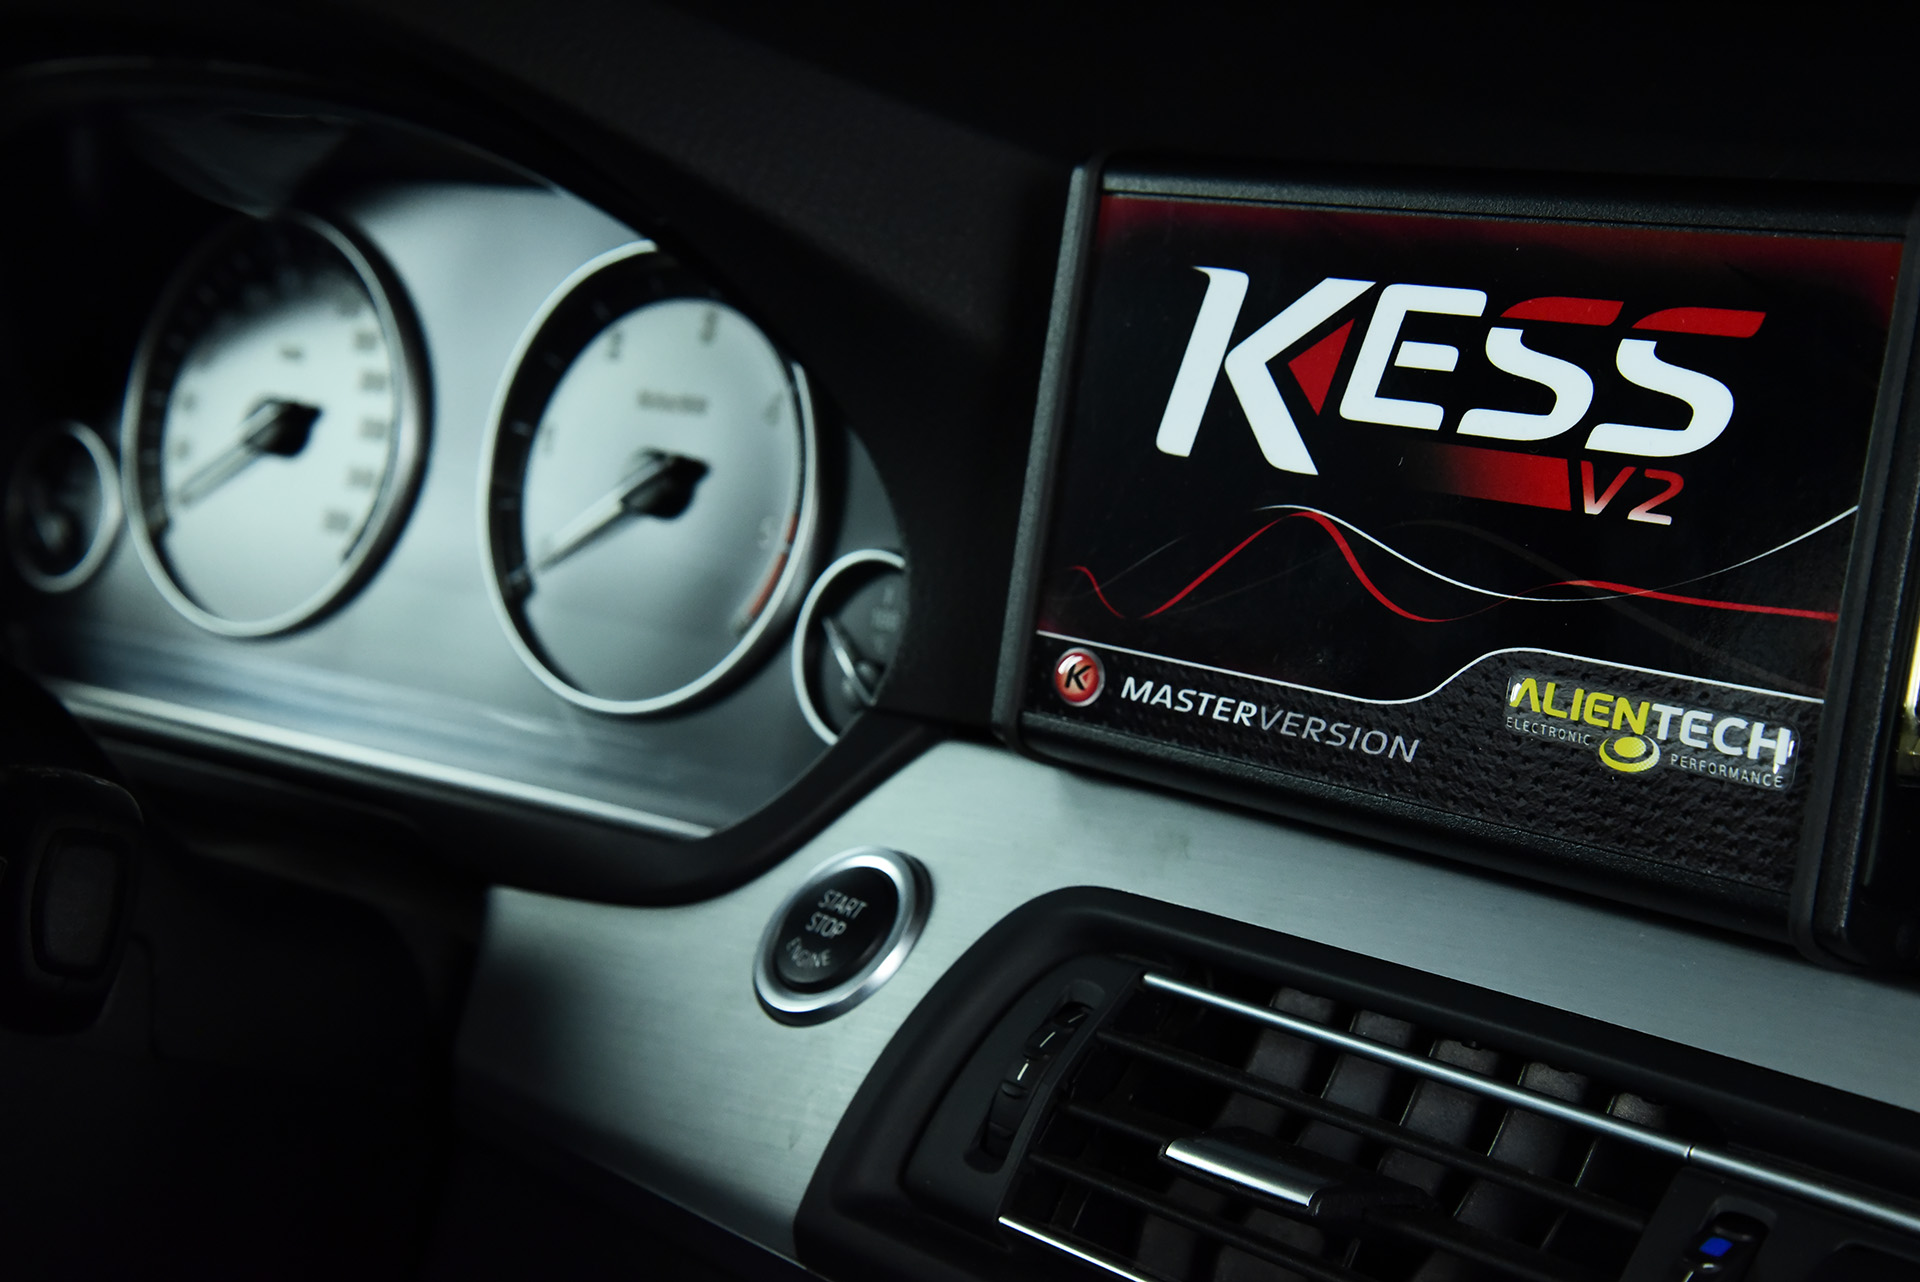 KESSv2 in car 2.jpg